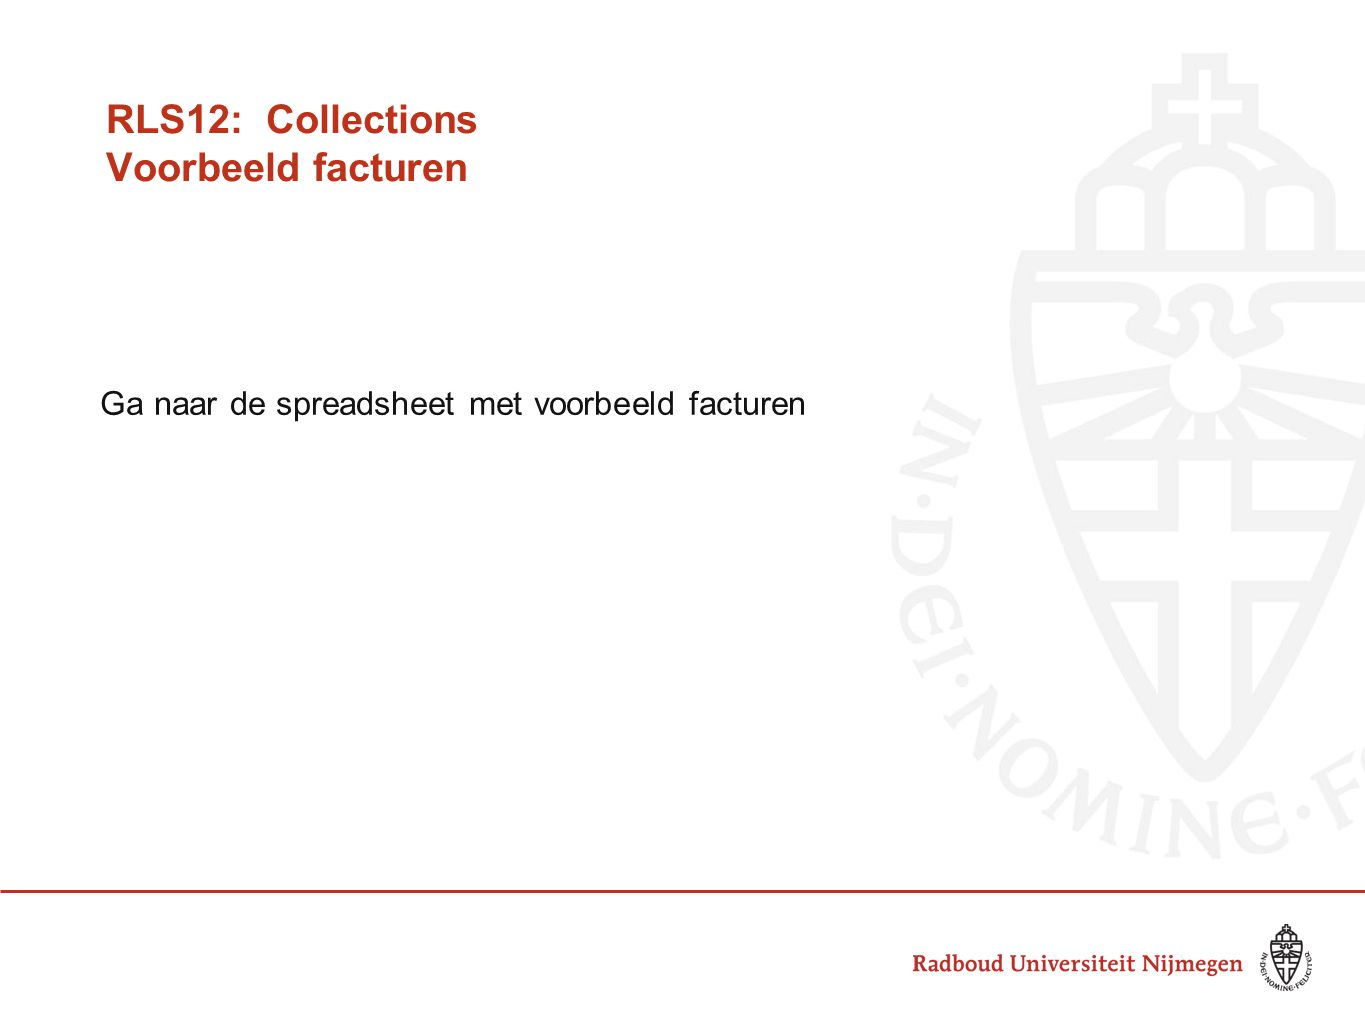 RLS12: Collections Voorbeeld facturen